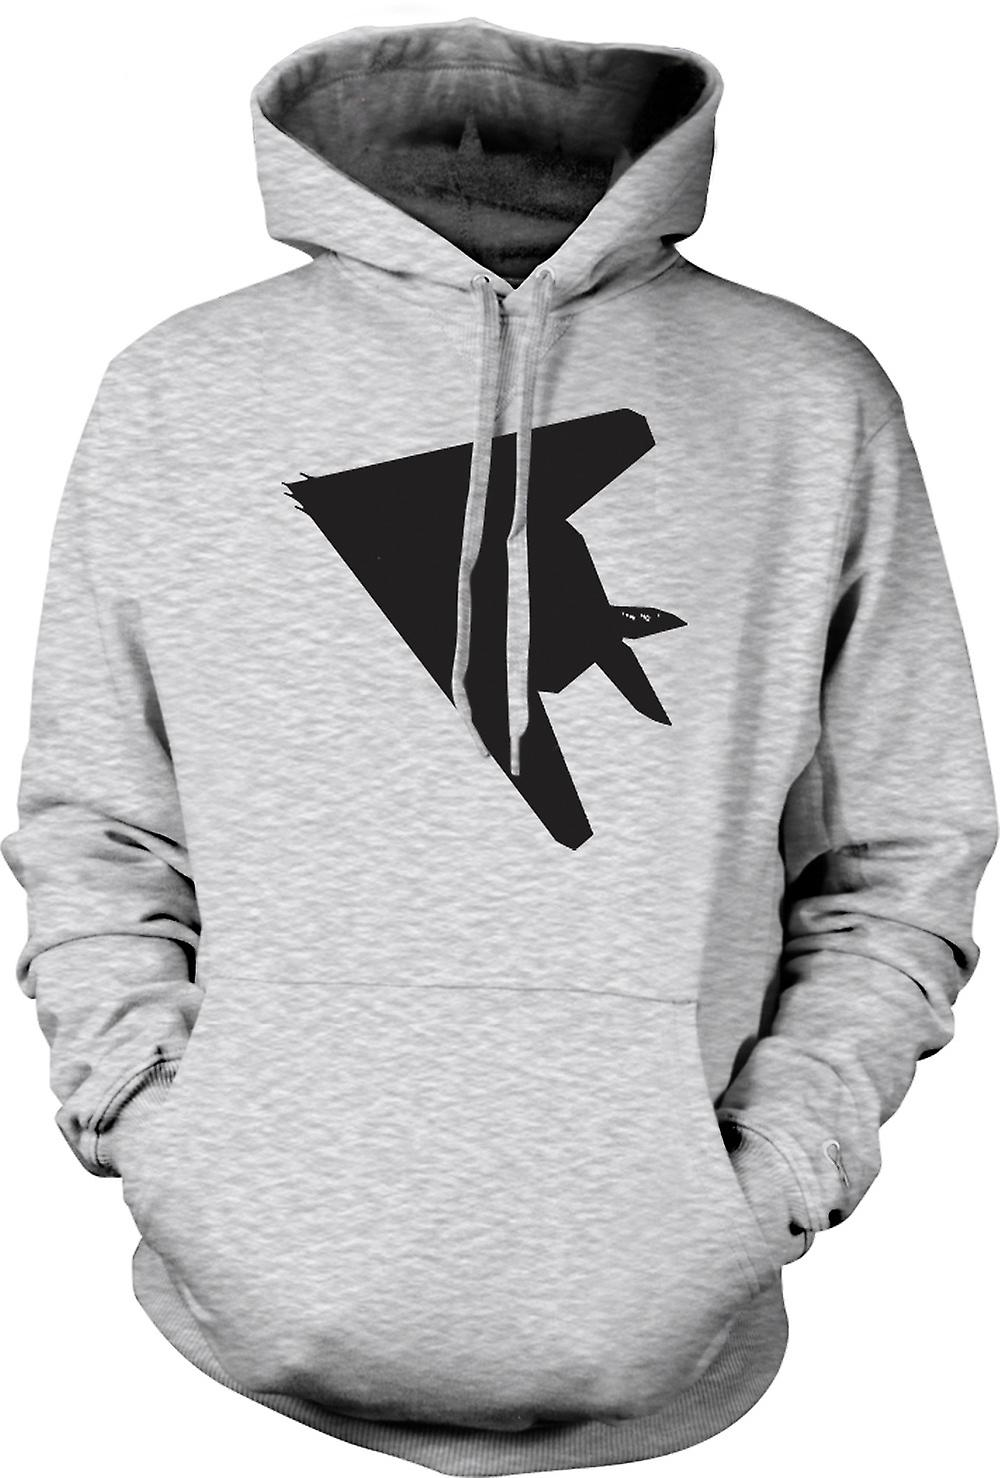 Mens Hoodie - Lockheed F-117 Nighthawk - avion furtif dessous